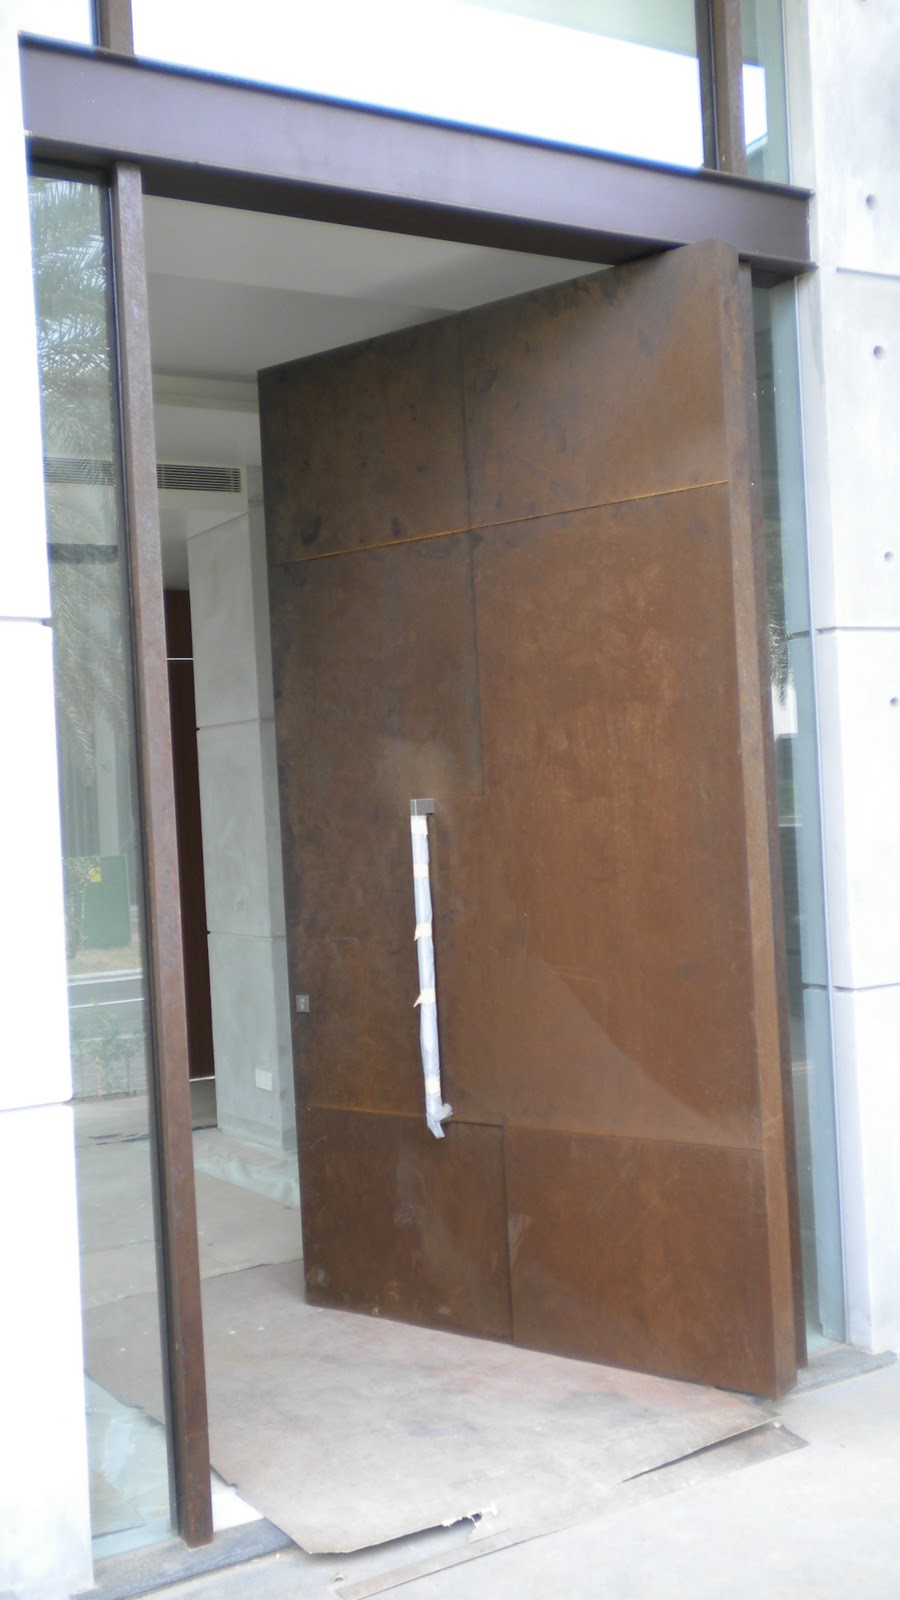 Charmant The Best Part About The Metal Corten Door Is That It Has Specially Treated,  It Will Not Rust And It Has A Smooth Surface Texture.